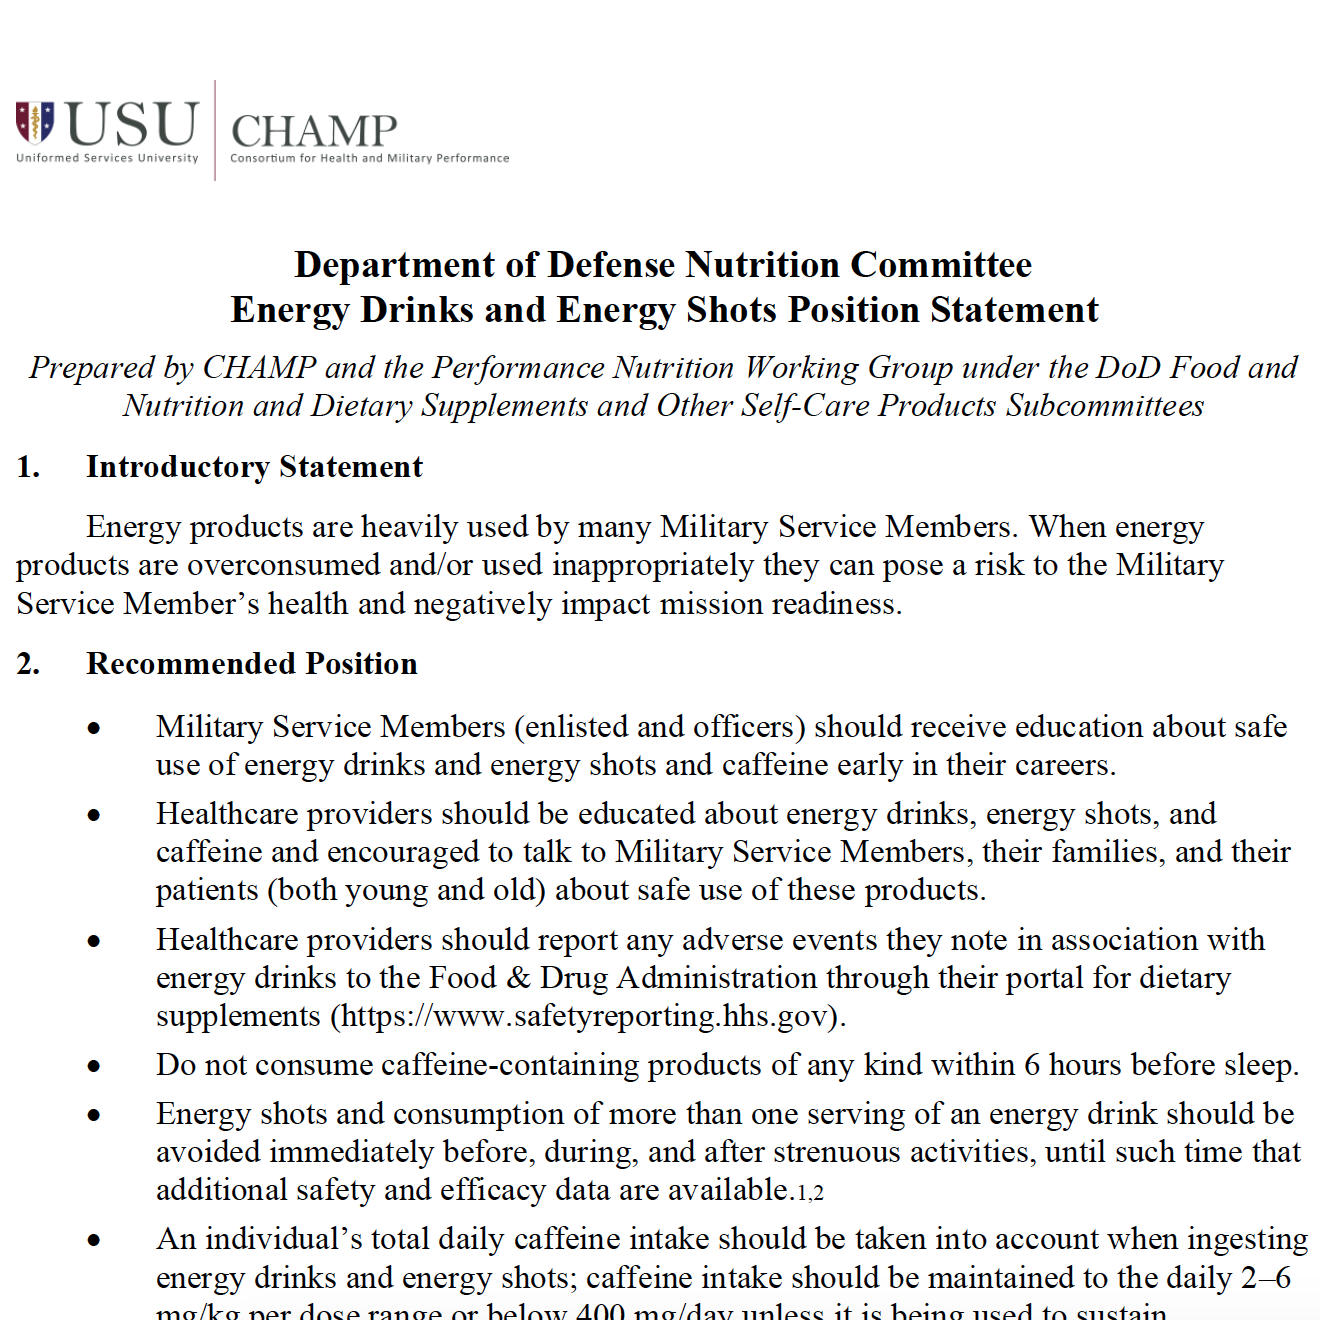 Department of Defense Energy Drinks/Shots Position Statement